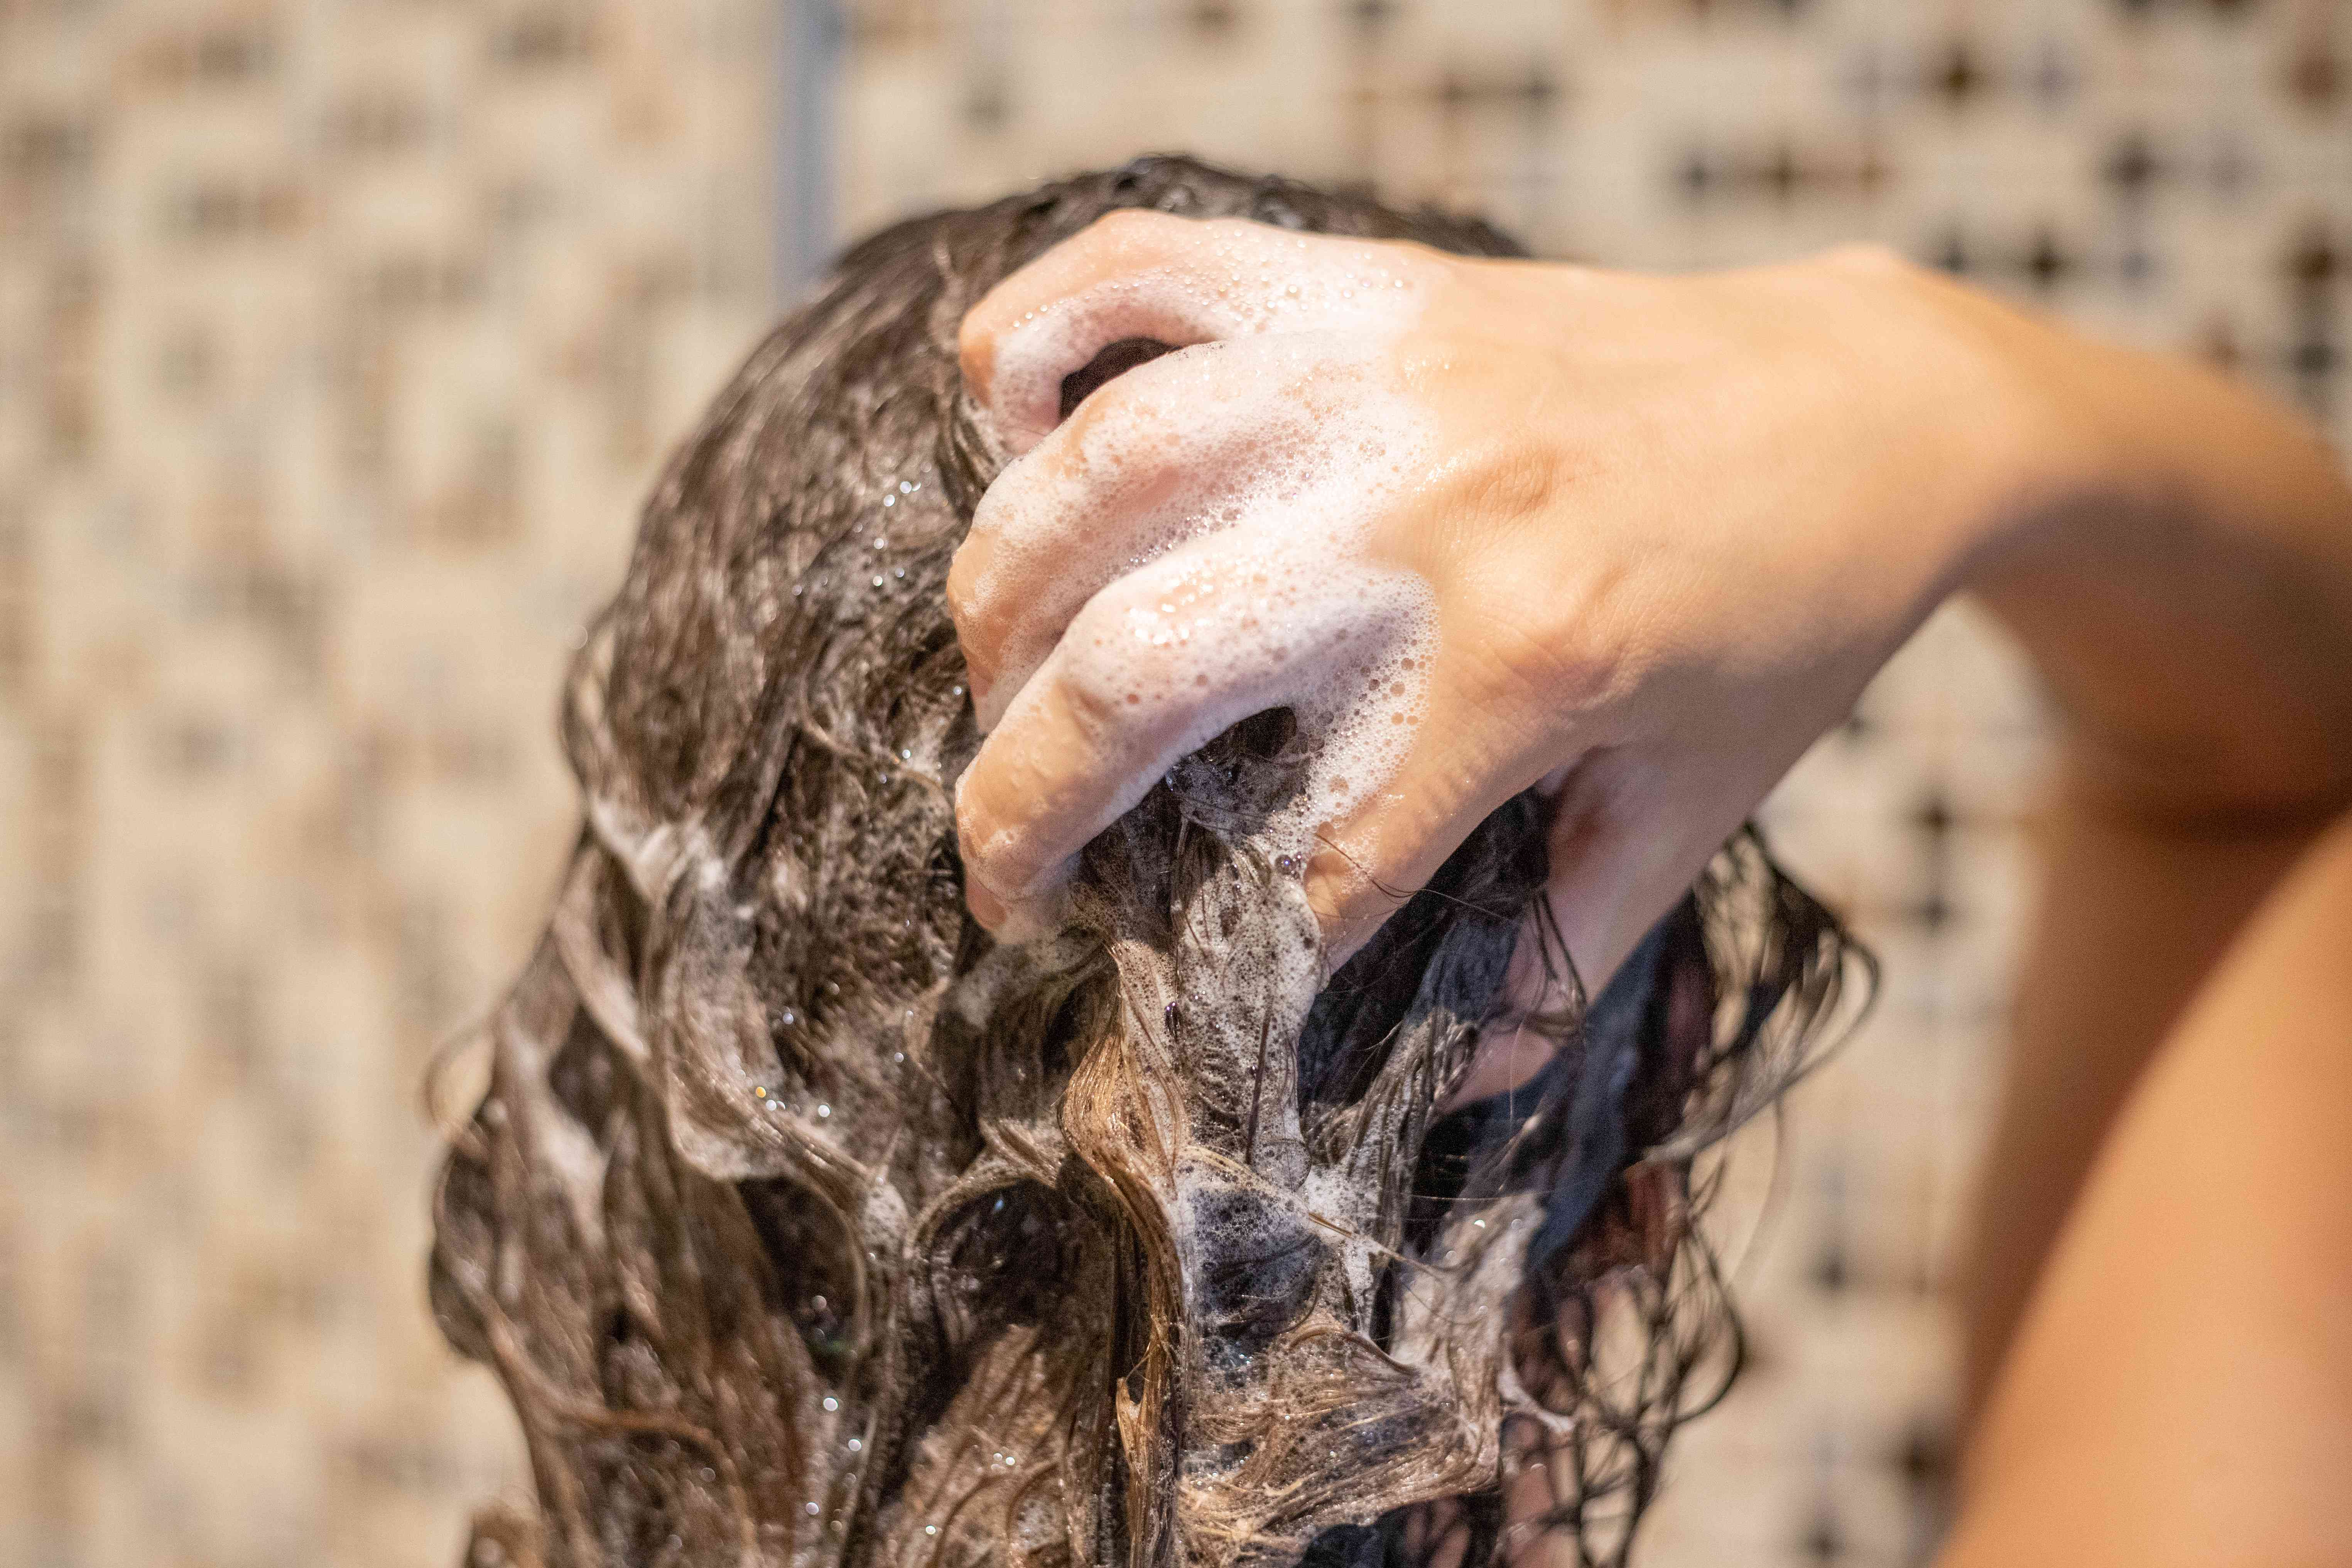 back of woman's head shampooing her hair in shower